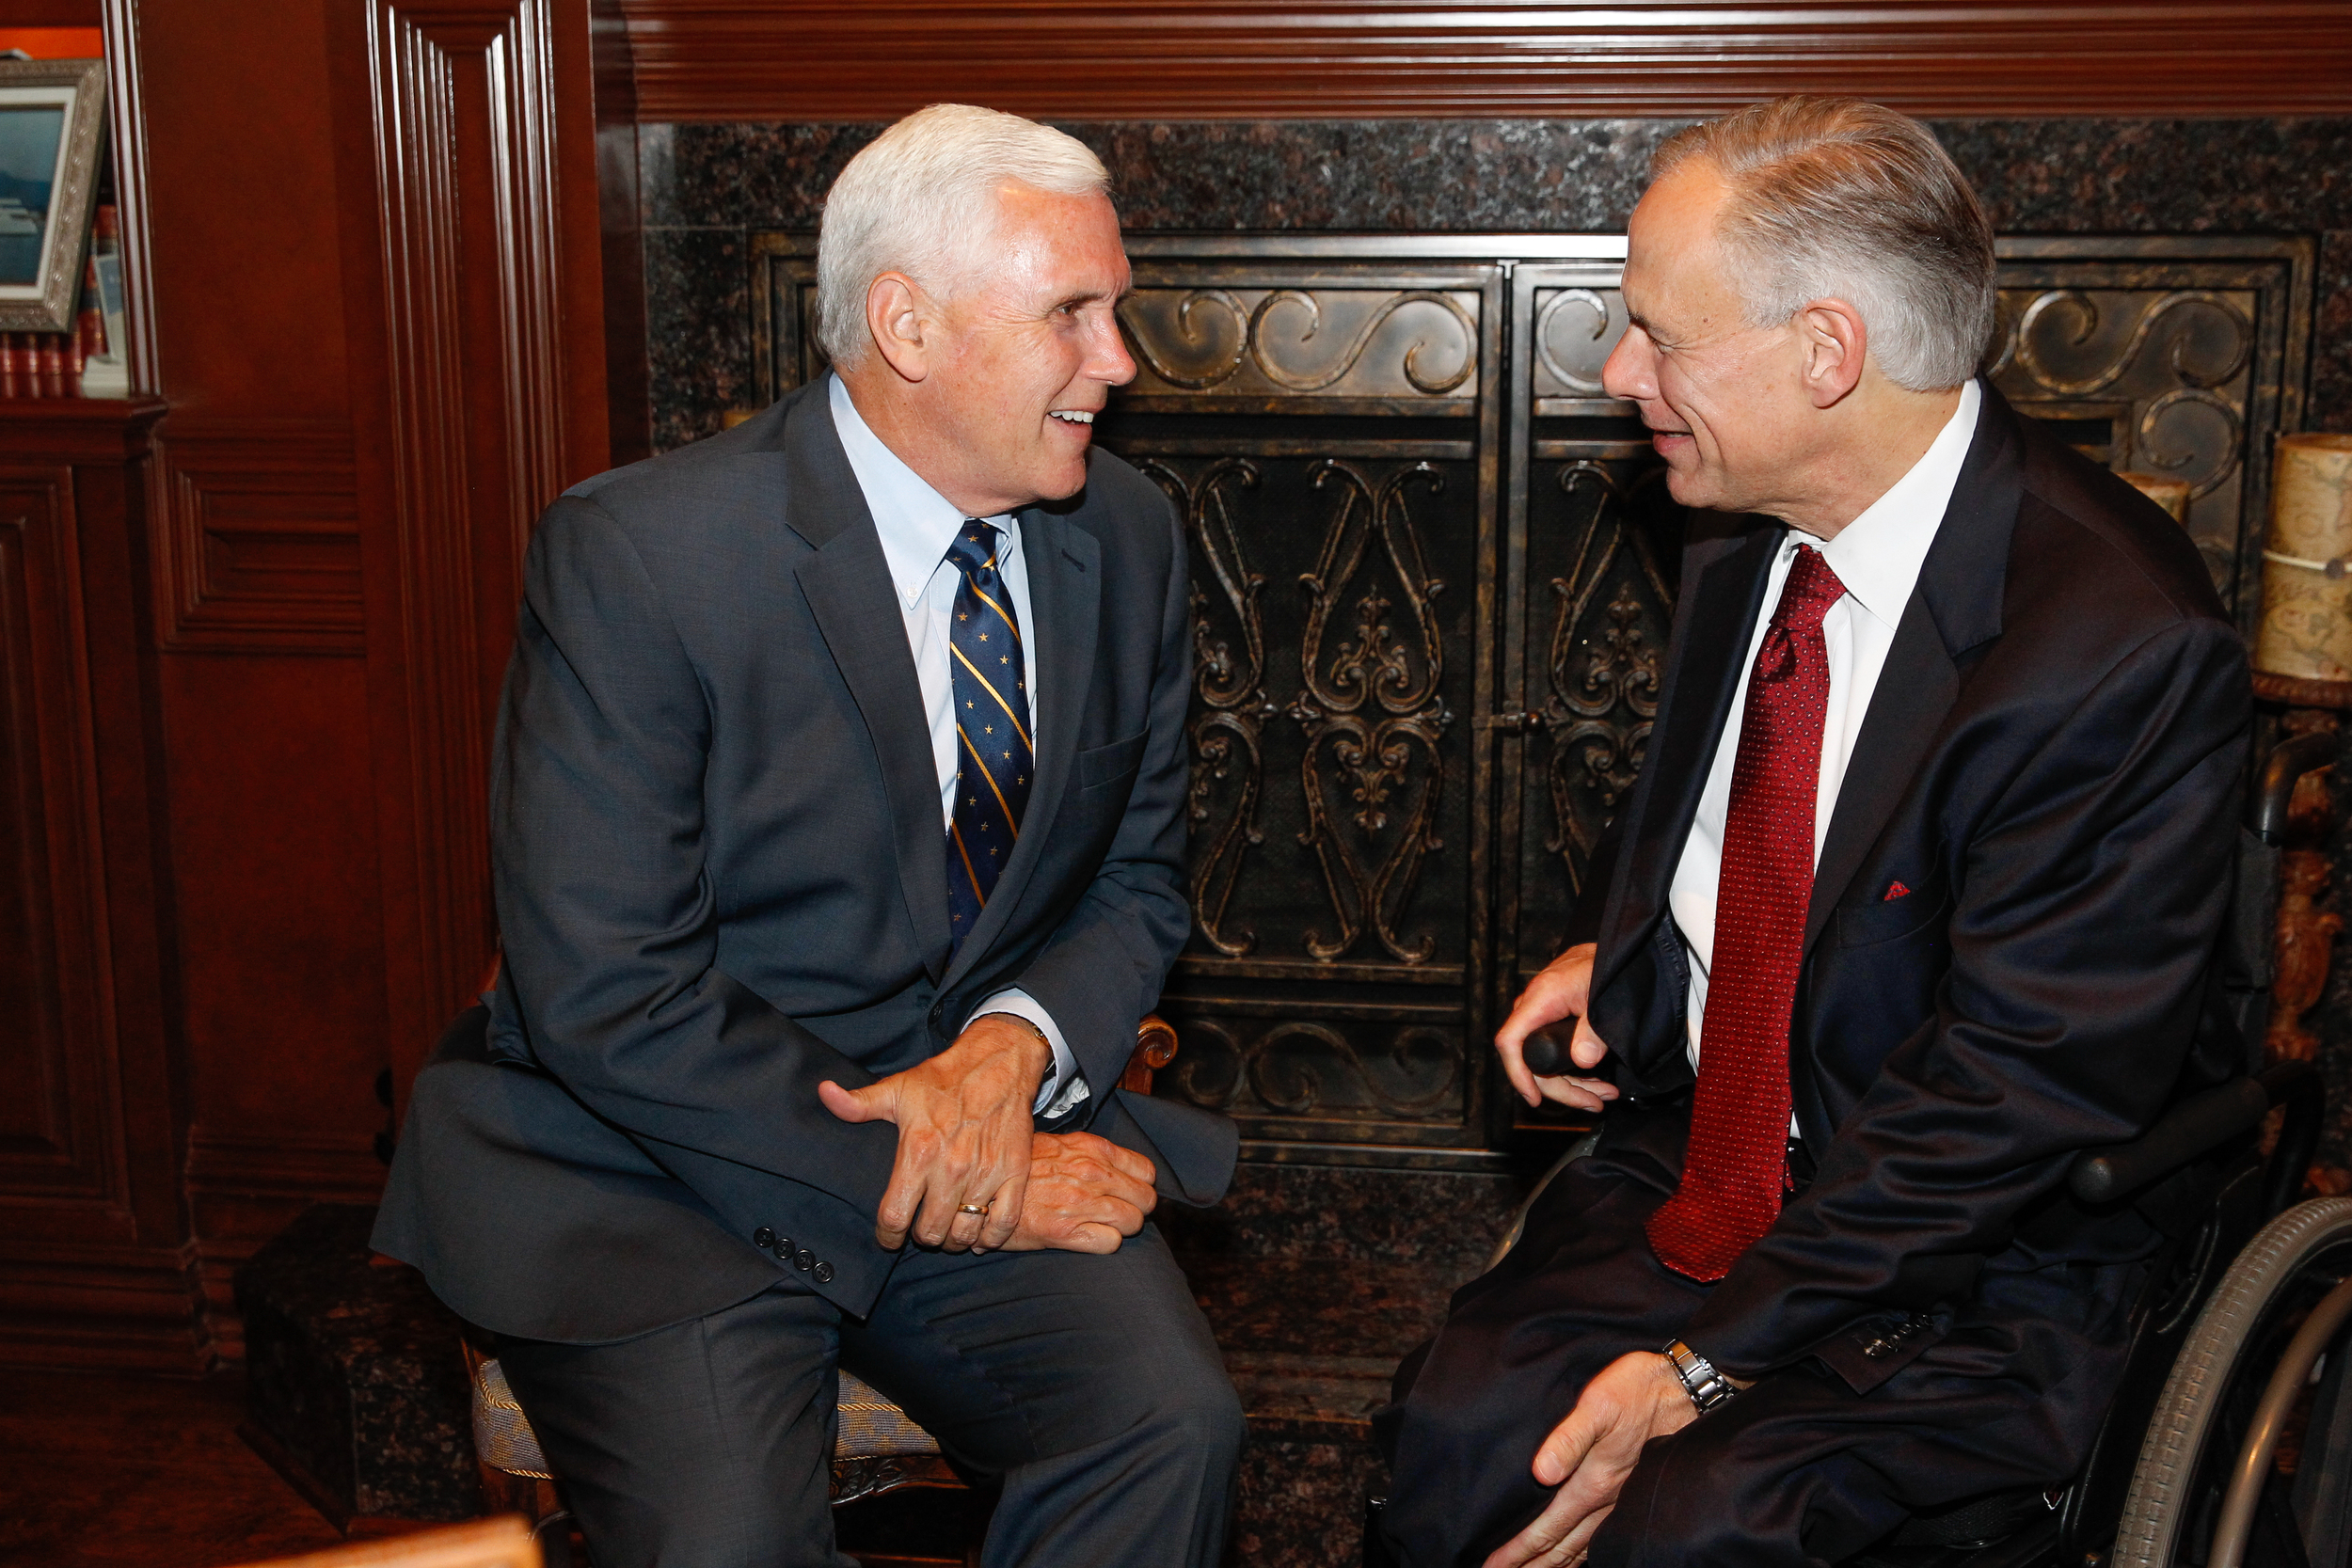 Indiana Governor Mike Pence and Texas Governor Greg Abbott talk at a Dallas reception for Vice President Pence in 2016.